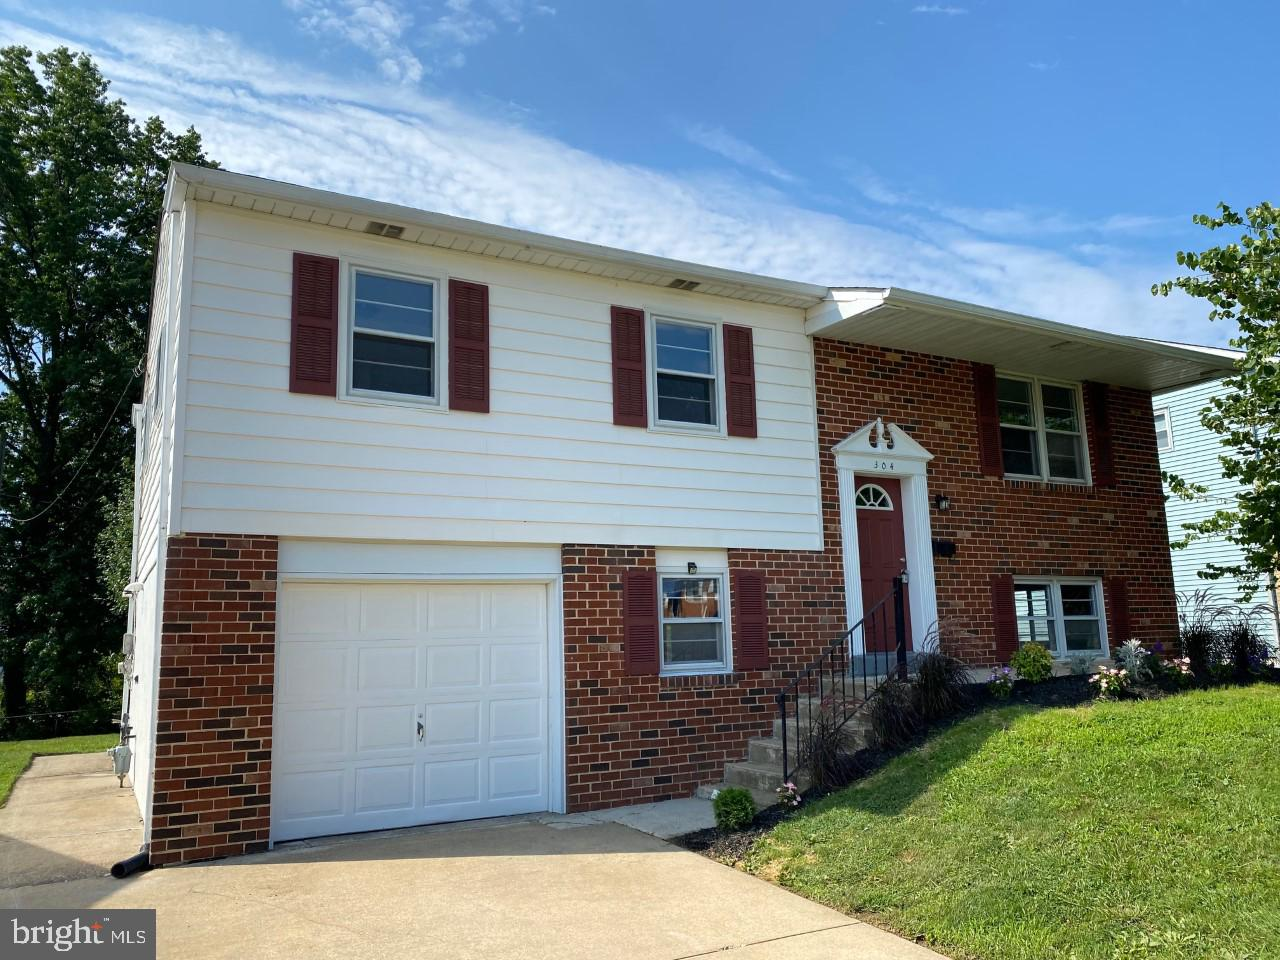 Don't wait too long or this one will be gone.  This Move-in condition, Brick & Vinyl,  Bi-Level is located on a quiet street in the convenient community of Middleboro East.  Within simple walking distance to DMA, this Four bedroom, 2 Full bath , updated home sits on a fantastic lot with a great backyard for all kinds of  outdoor activities.  This home features a brand new white kitchen with grey plank flooring ,  all new stainless steel appliances including B/I microwave and new fridge. There is a breakfast bar allowing the kitchen to be open to the Dining Room giving this home great flow.  There is new carpeting throughout, two full updated bathrooms,  four generous size bedrooms and much more. The lower level features a bedroom,  a beautiful full bathroom with tiled shower, a large mudroom,  which is big enough to make a  terrific home office or den,  a separate laundry room,  and large Family room with sliders leading  to a a great 3 season room with endless possibilities overlooking the back yard with large red barn style shed.  there is an oversized one car garage with inside access off of the mudroom.  This 4 bedroom home is a Great Value in Today's market!!